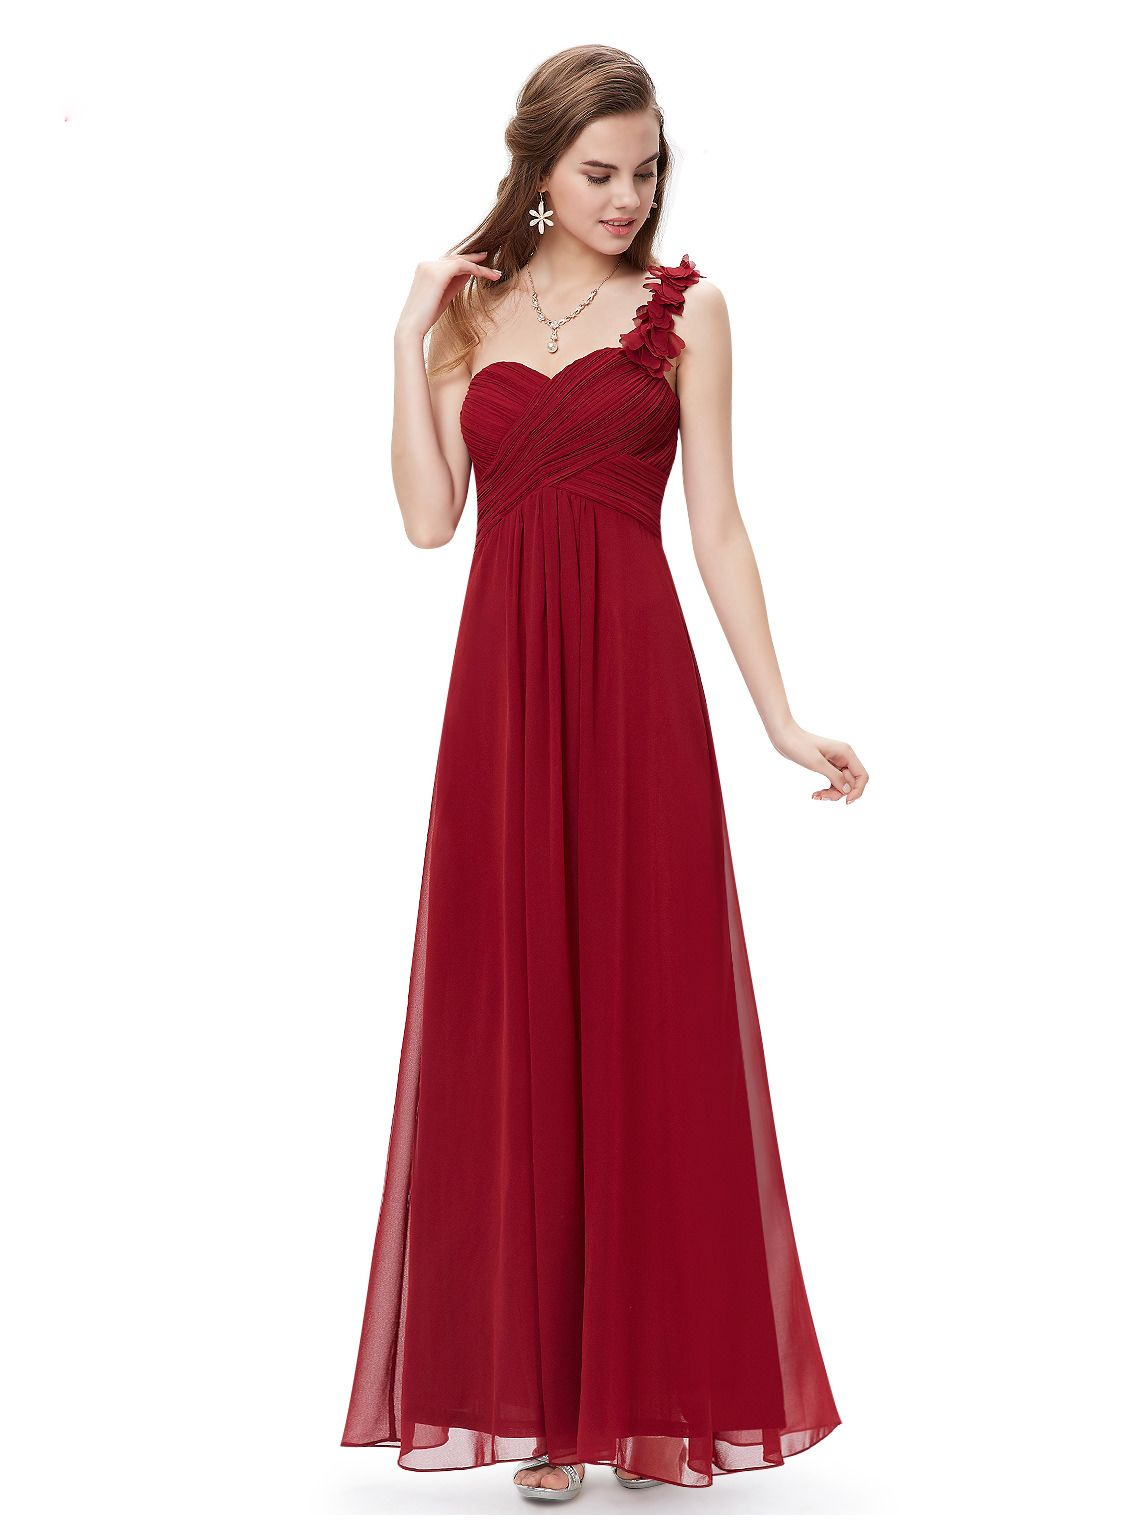 Langes One-Shoulder Abendkleid Rot  Brautjungfernkleider lang